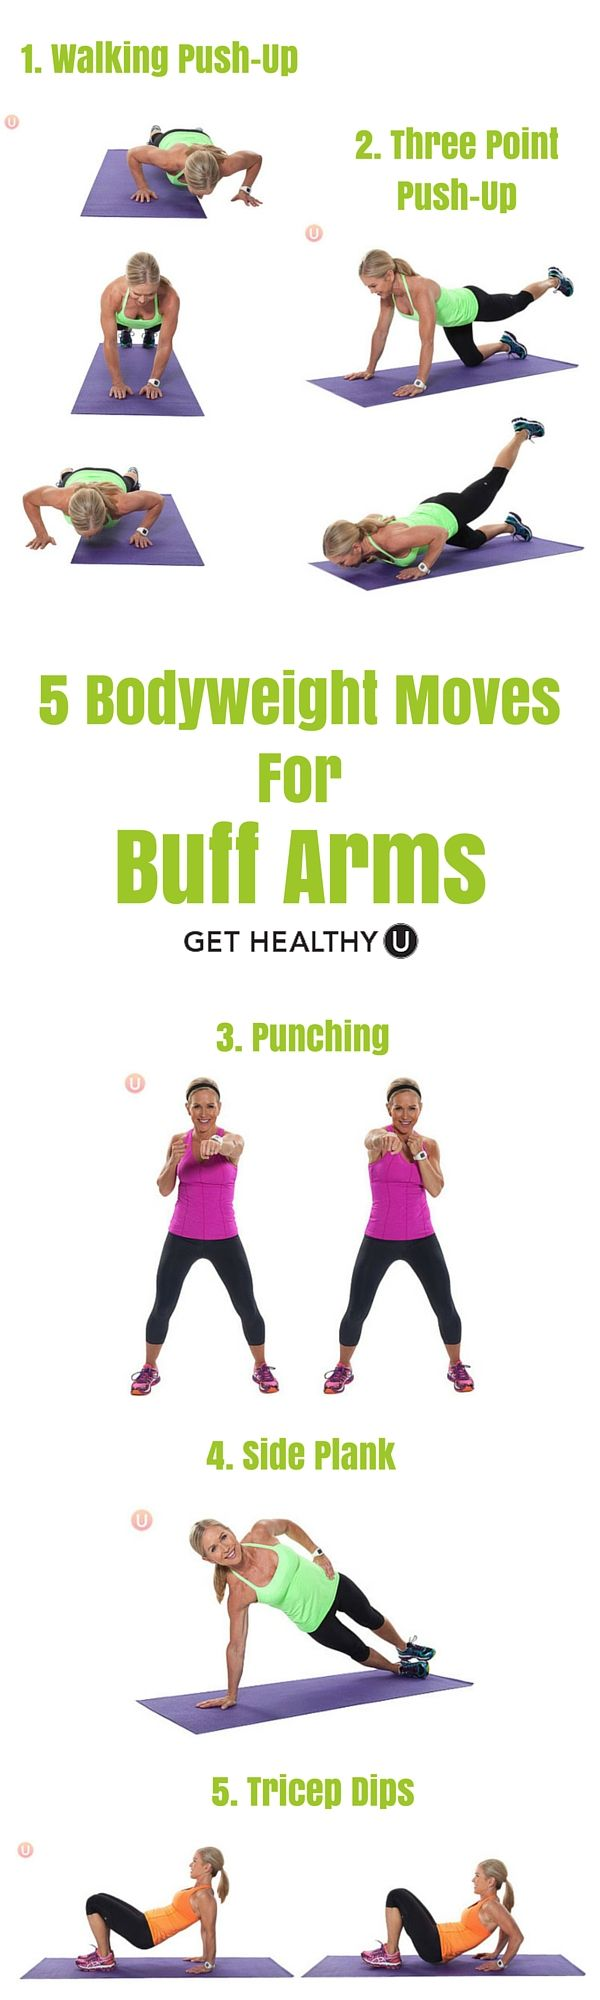 Some of the very best arms workouts are completely equipment-free. Bottom line is great arms can come in practical ways. Here are five great bodyweight moves for buff arms that require just YOU!